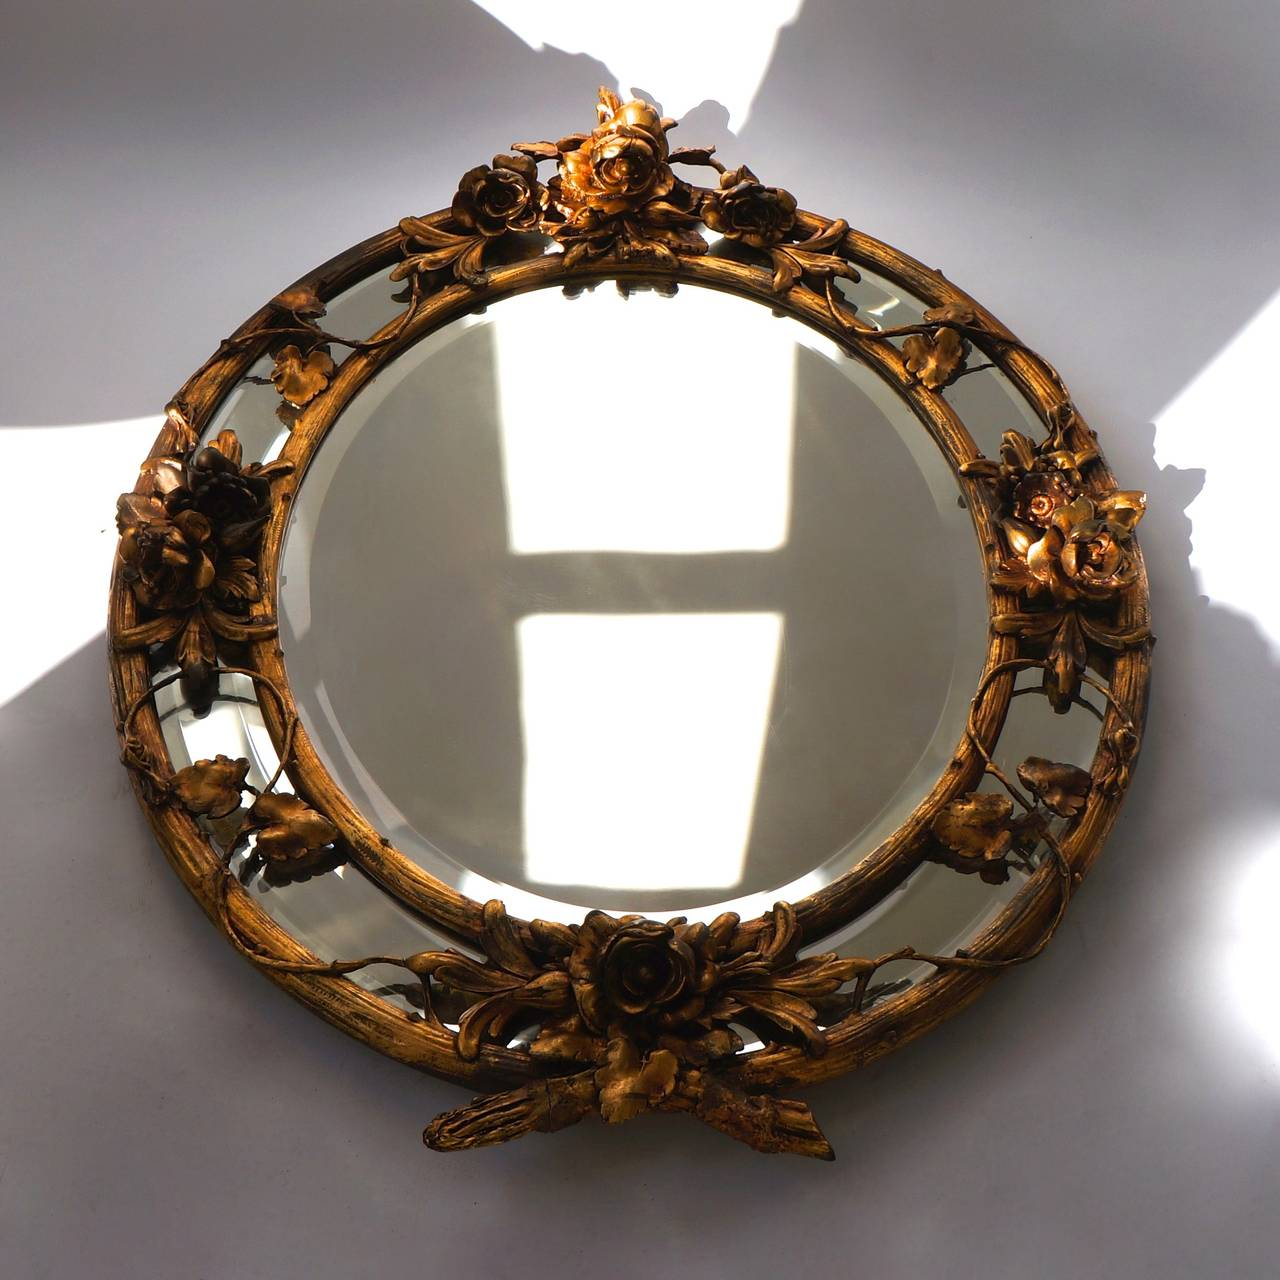 A lovely Rococo wall mirror with the original gilt, showing some loss. Lots of good details, a Classic beauty.